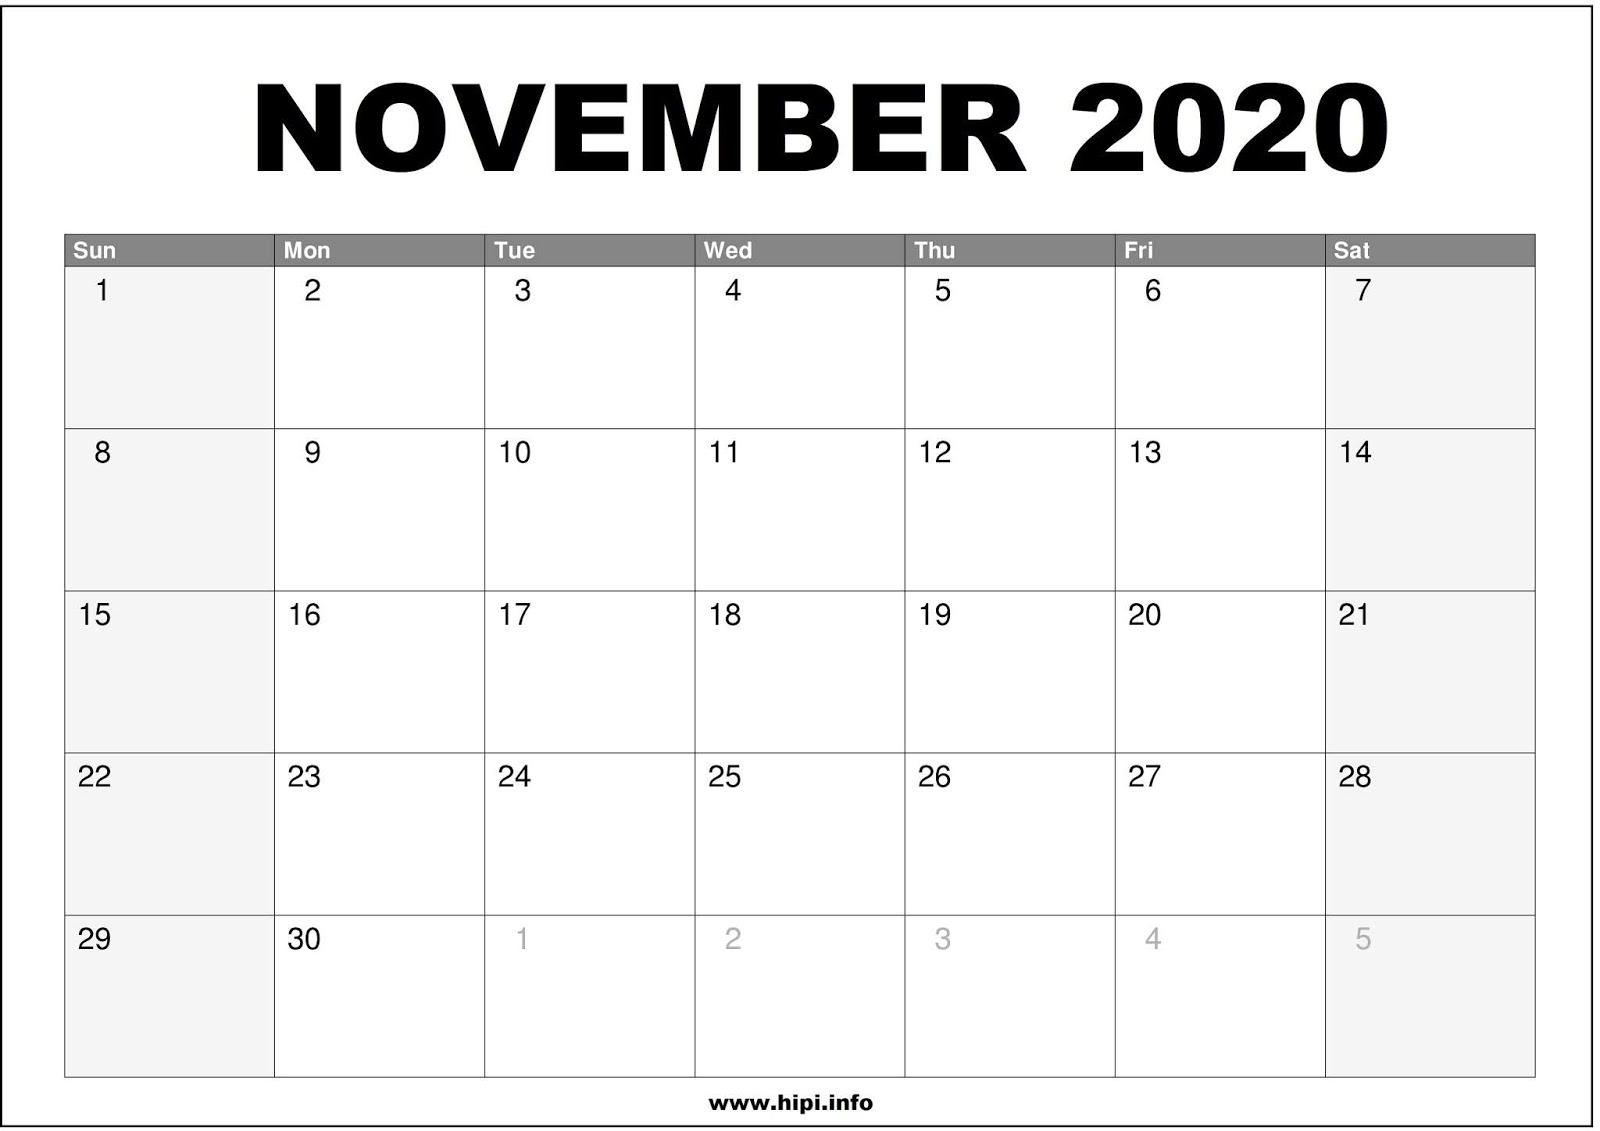 November 2020 Calendar Wallpaper Twitter Headers / Facebook Covers / Wallpapers / Calendars